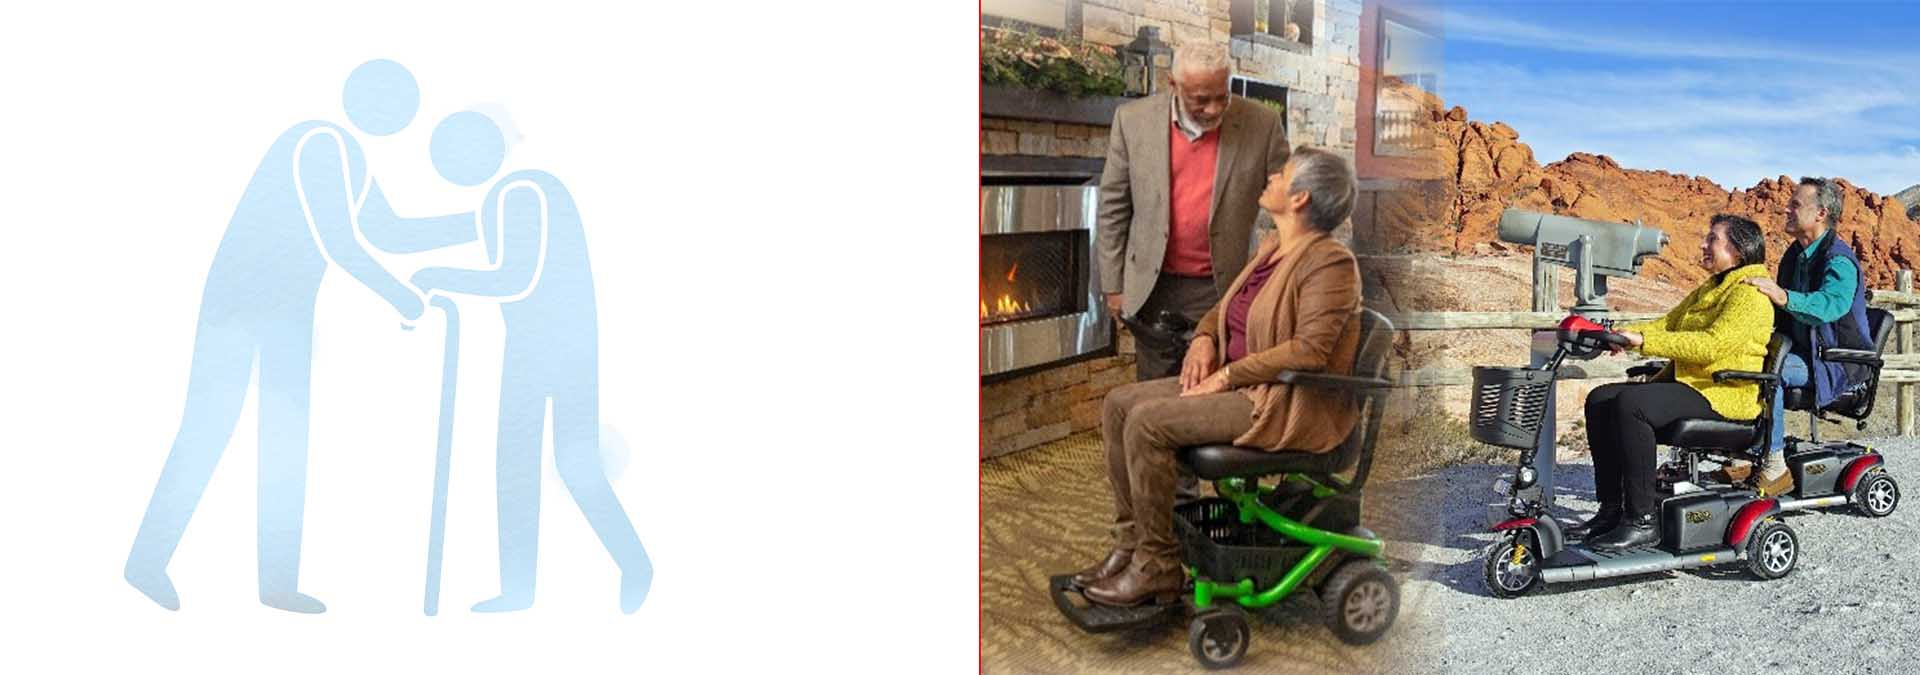 woman on electric wheelchair near fireplace and couple on mobility scooters sightseeing-